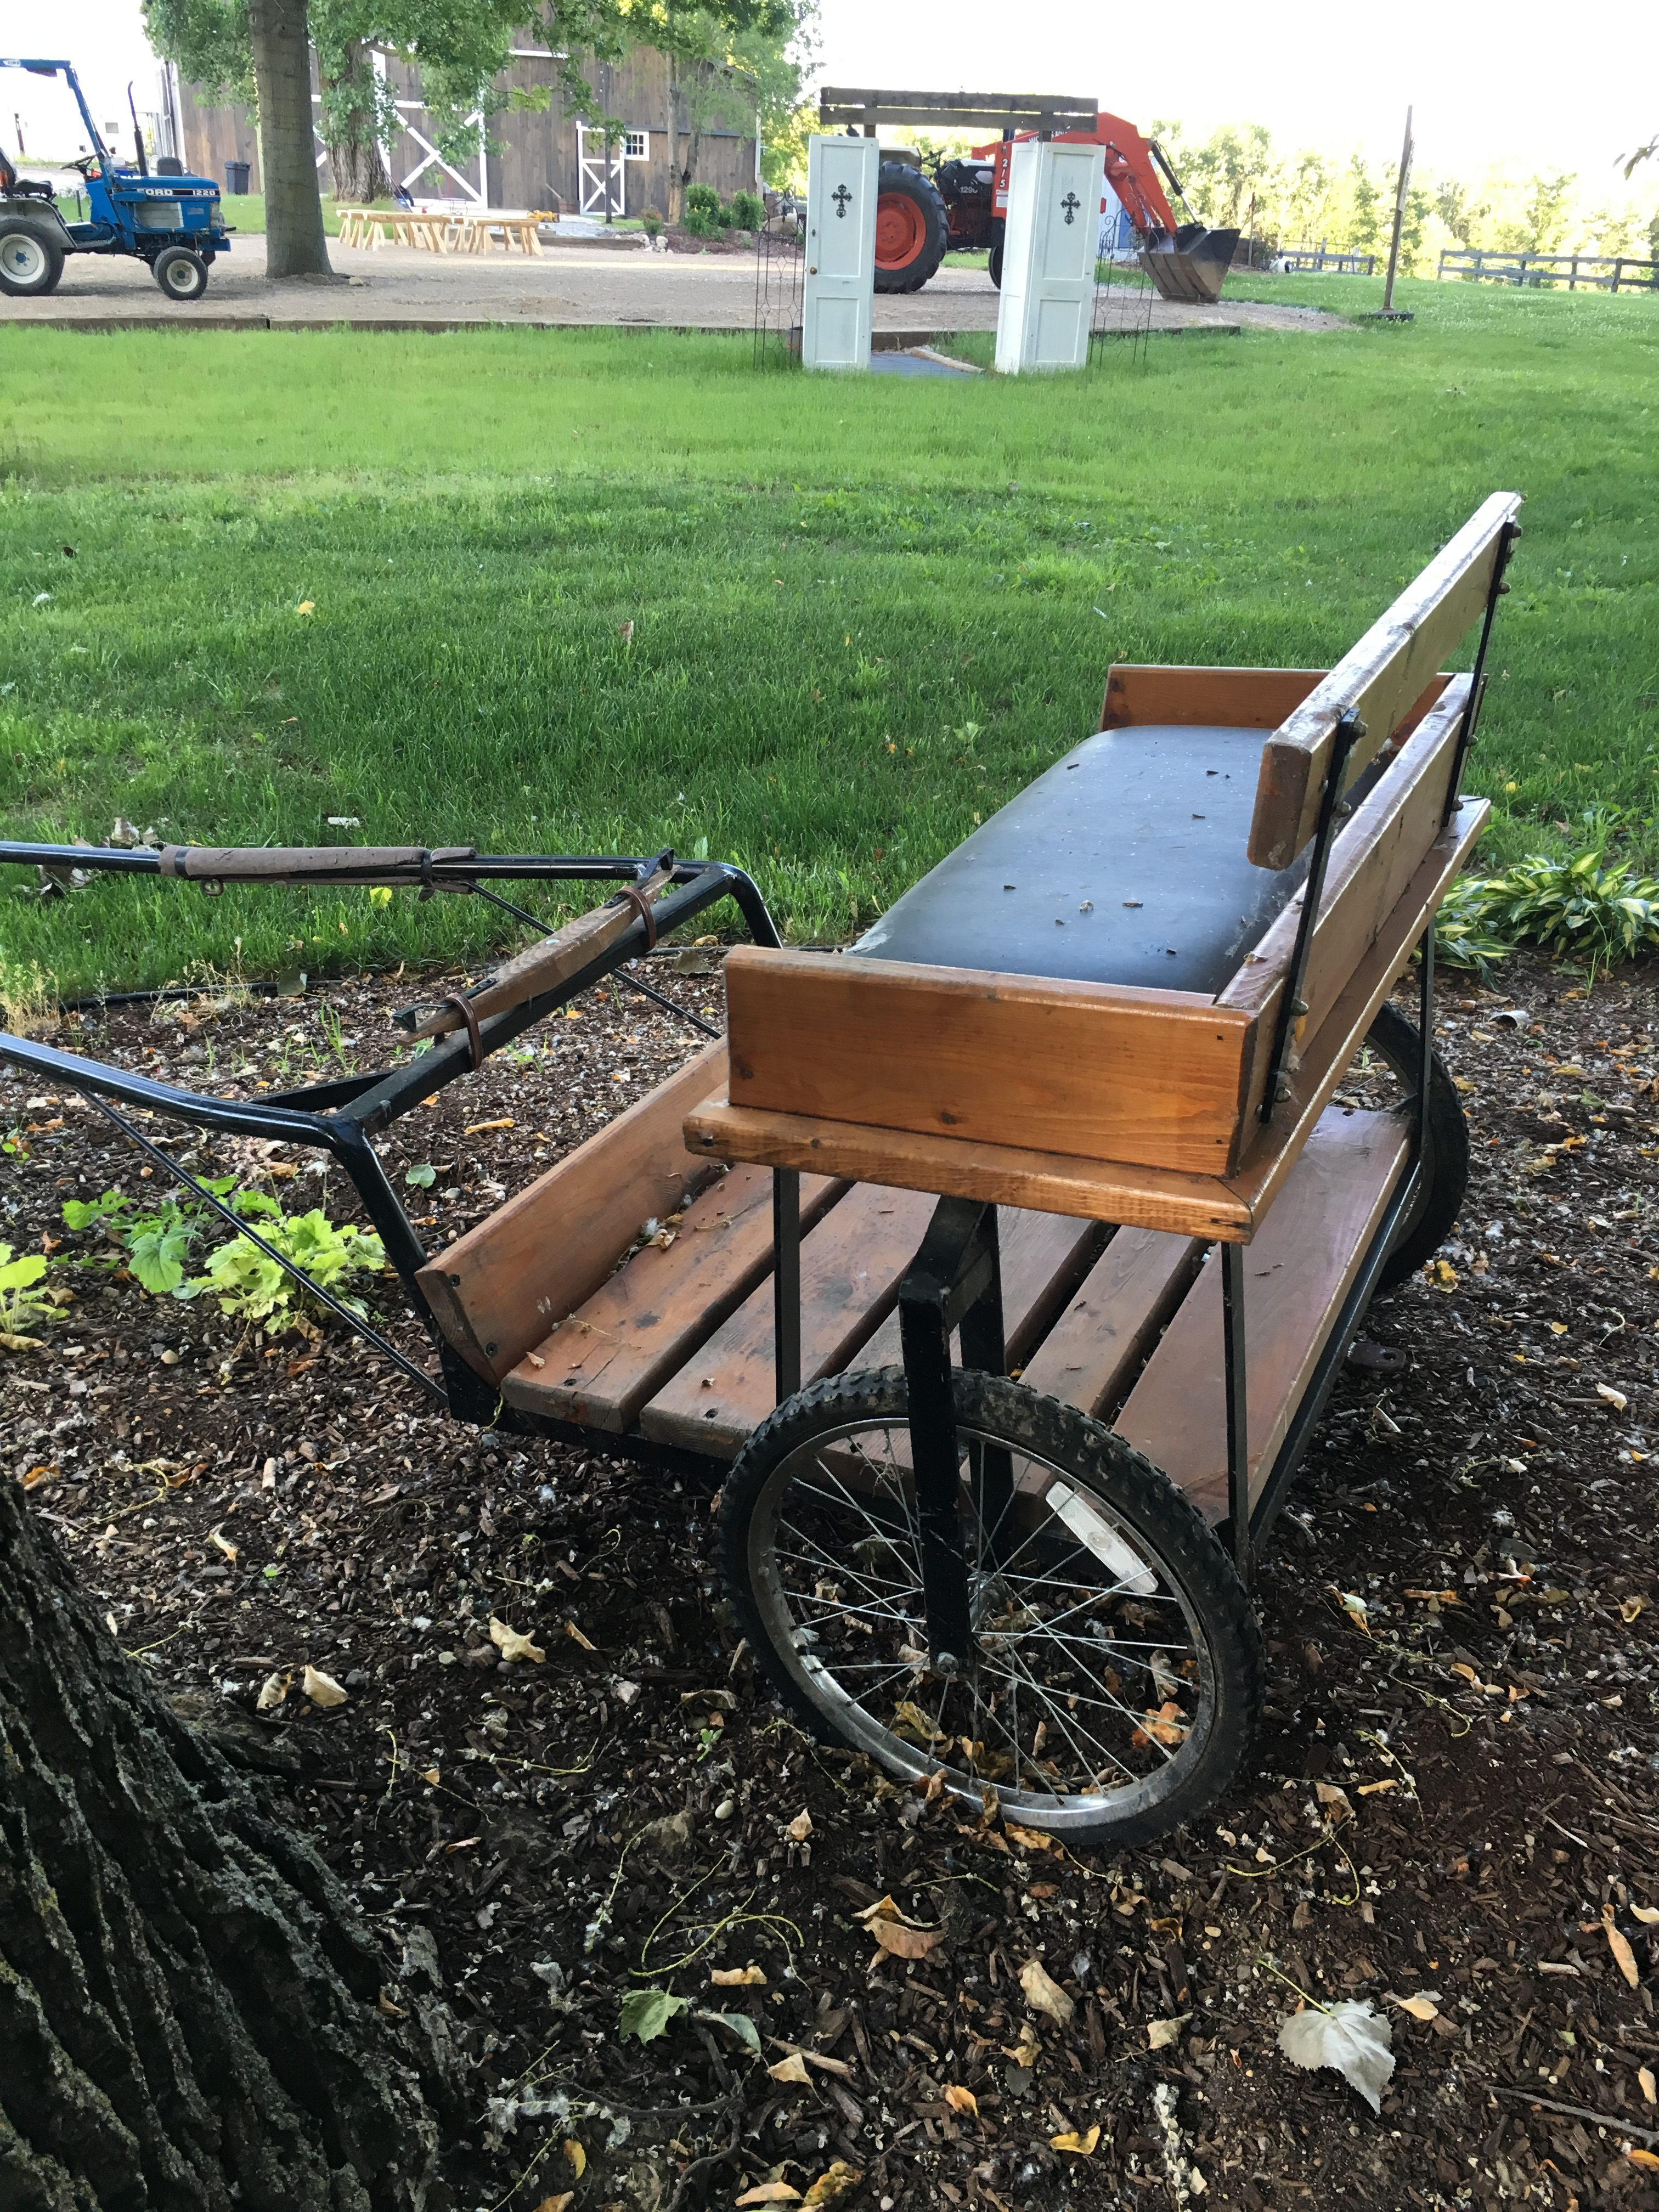 Picture of a homemade Bench that hooks up to a bike.